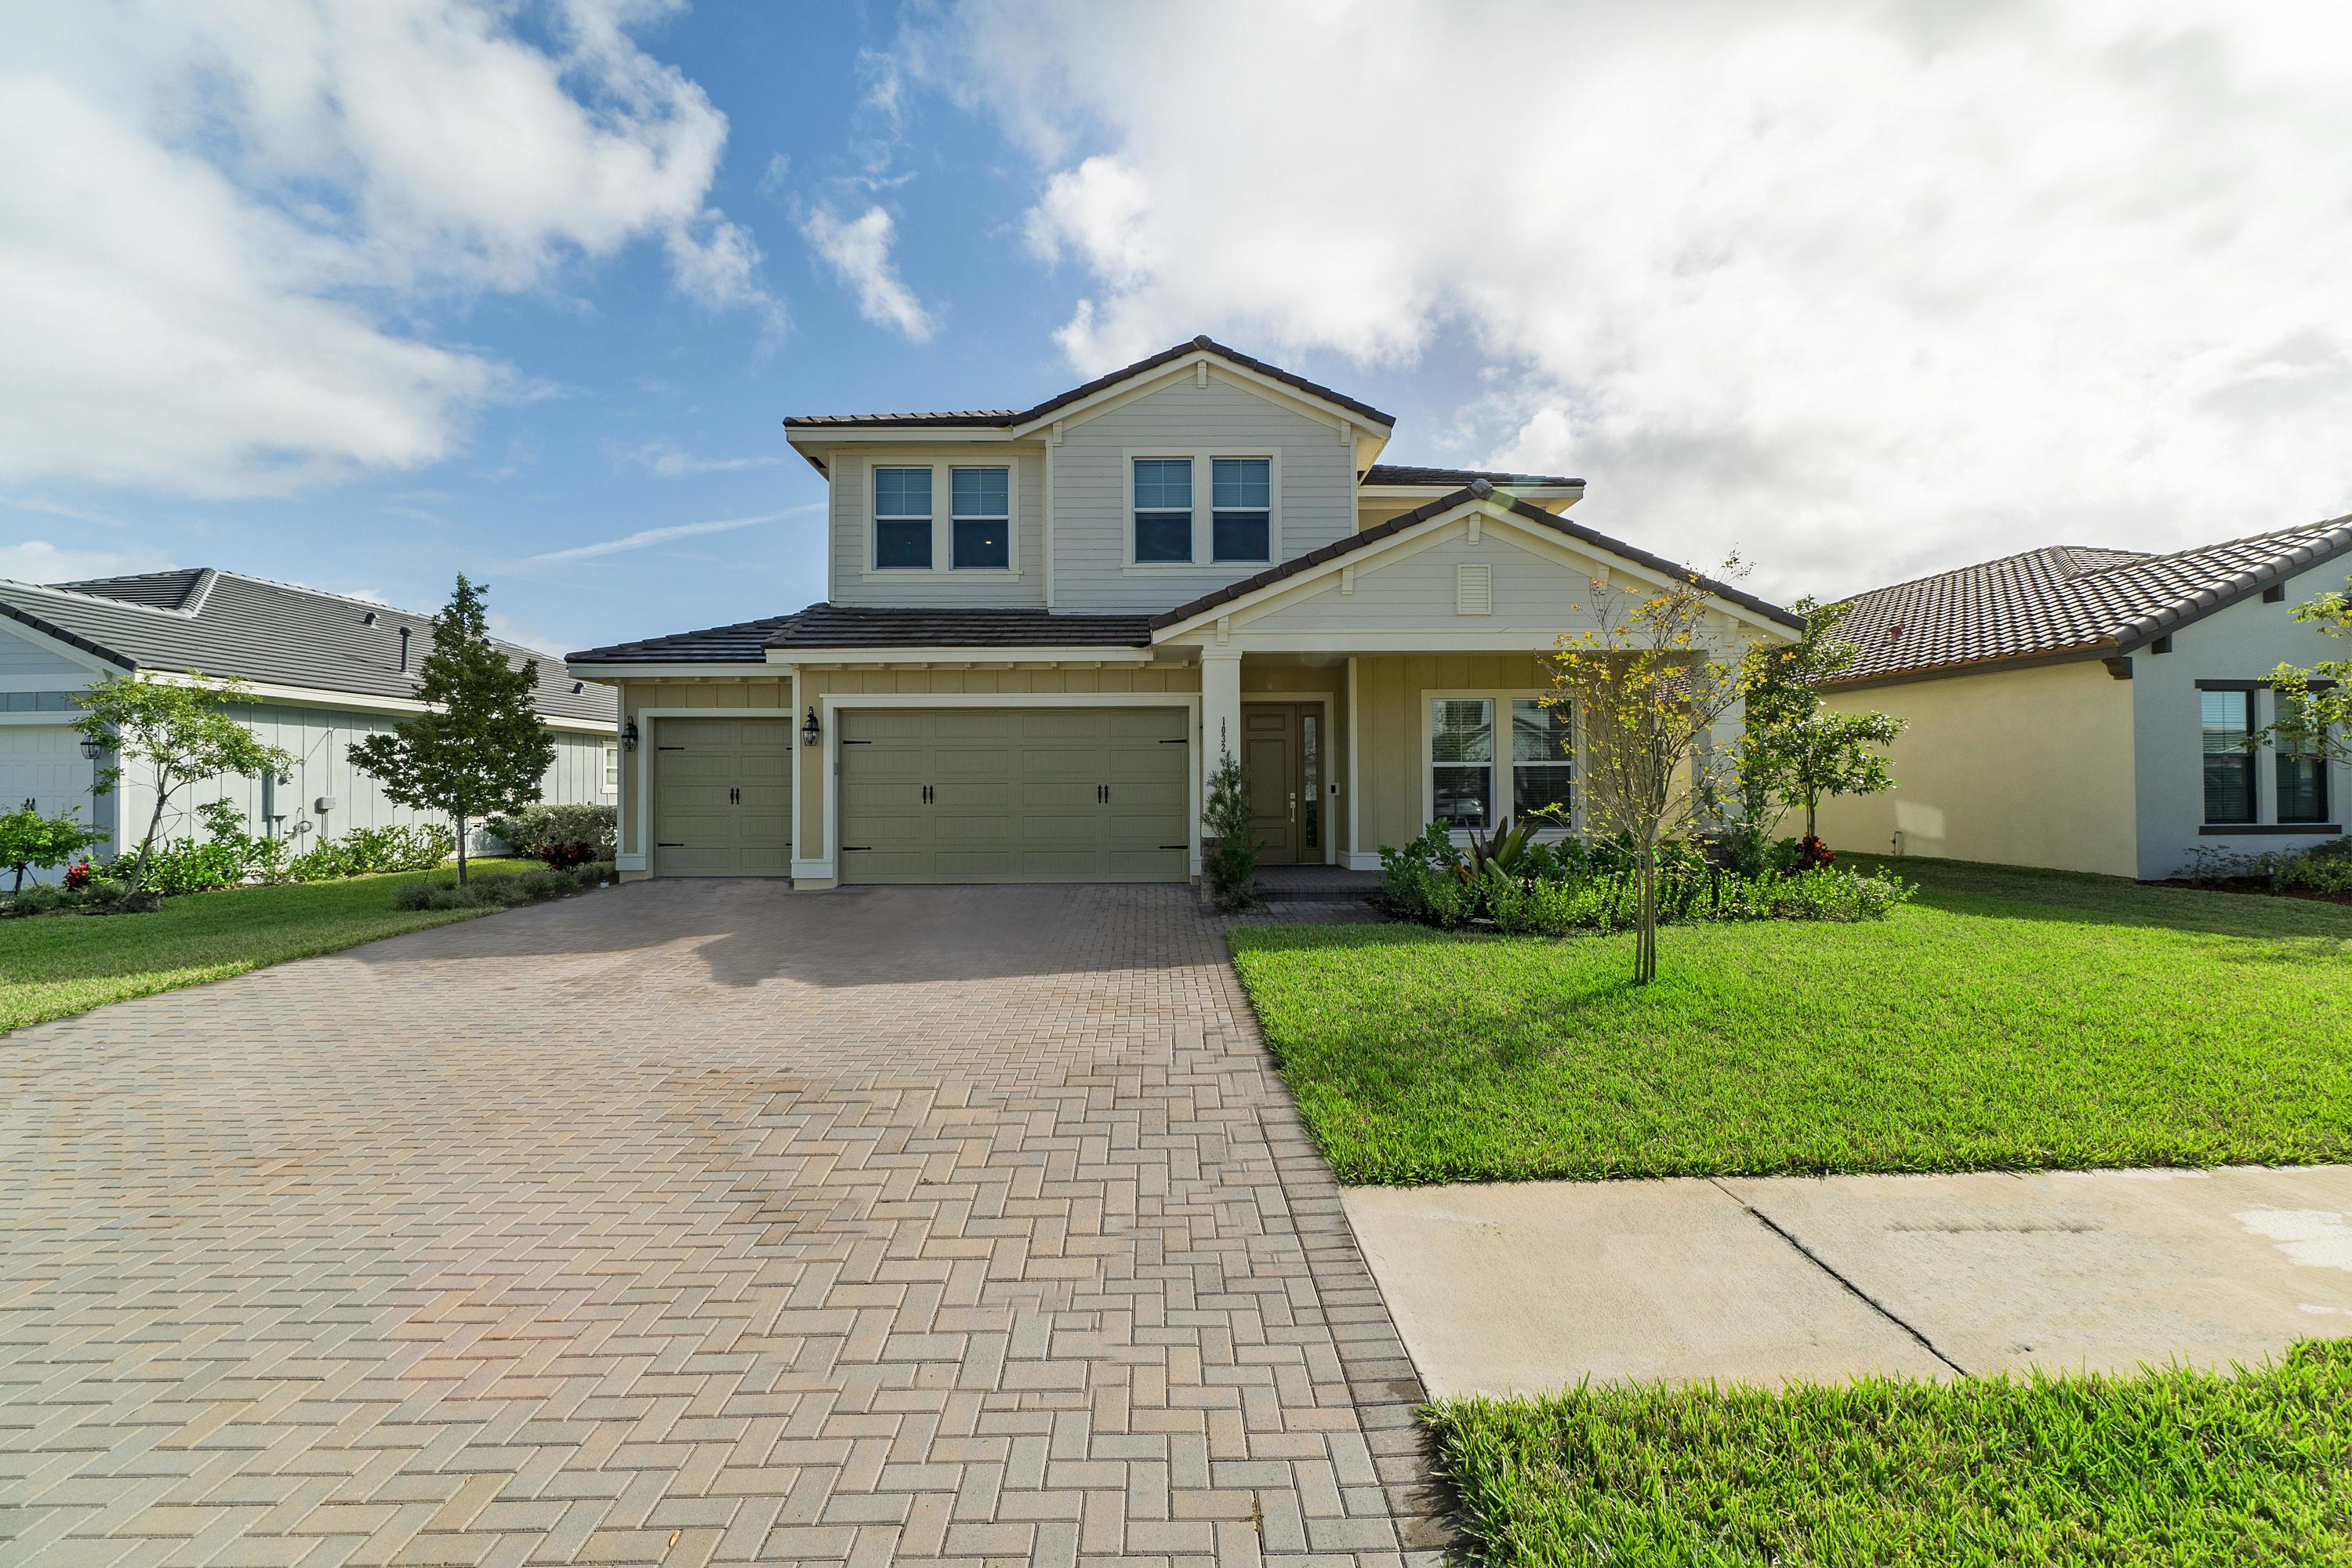 1032 Sterling Pine Place - Loxahatchee, Florida